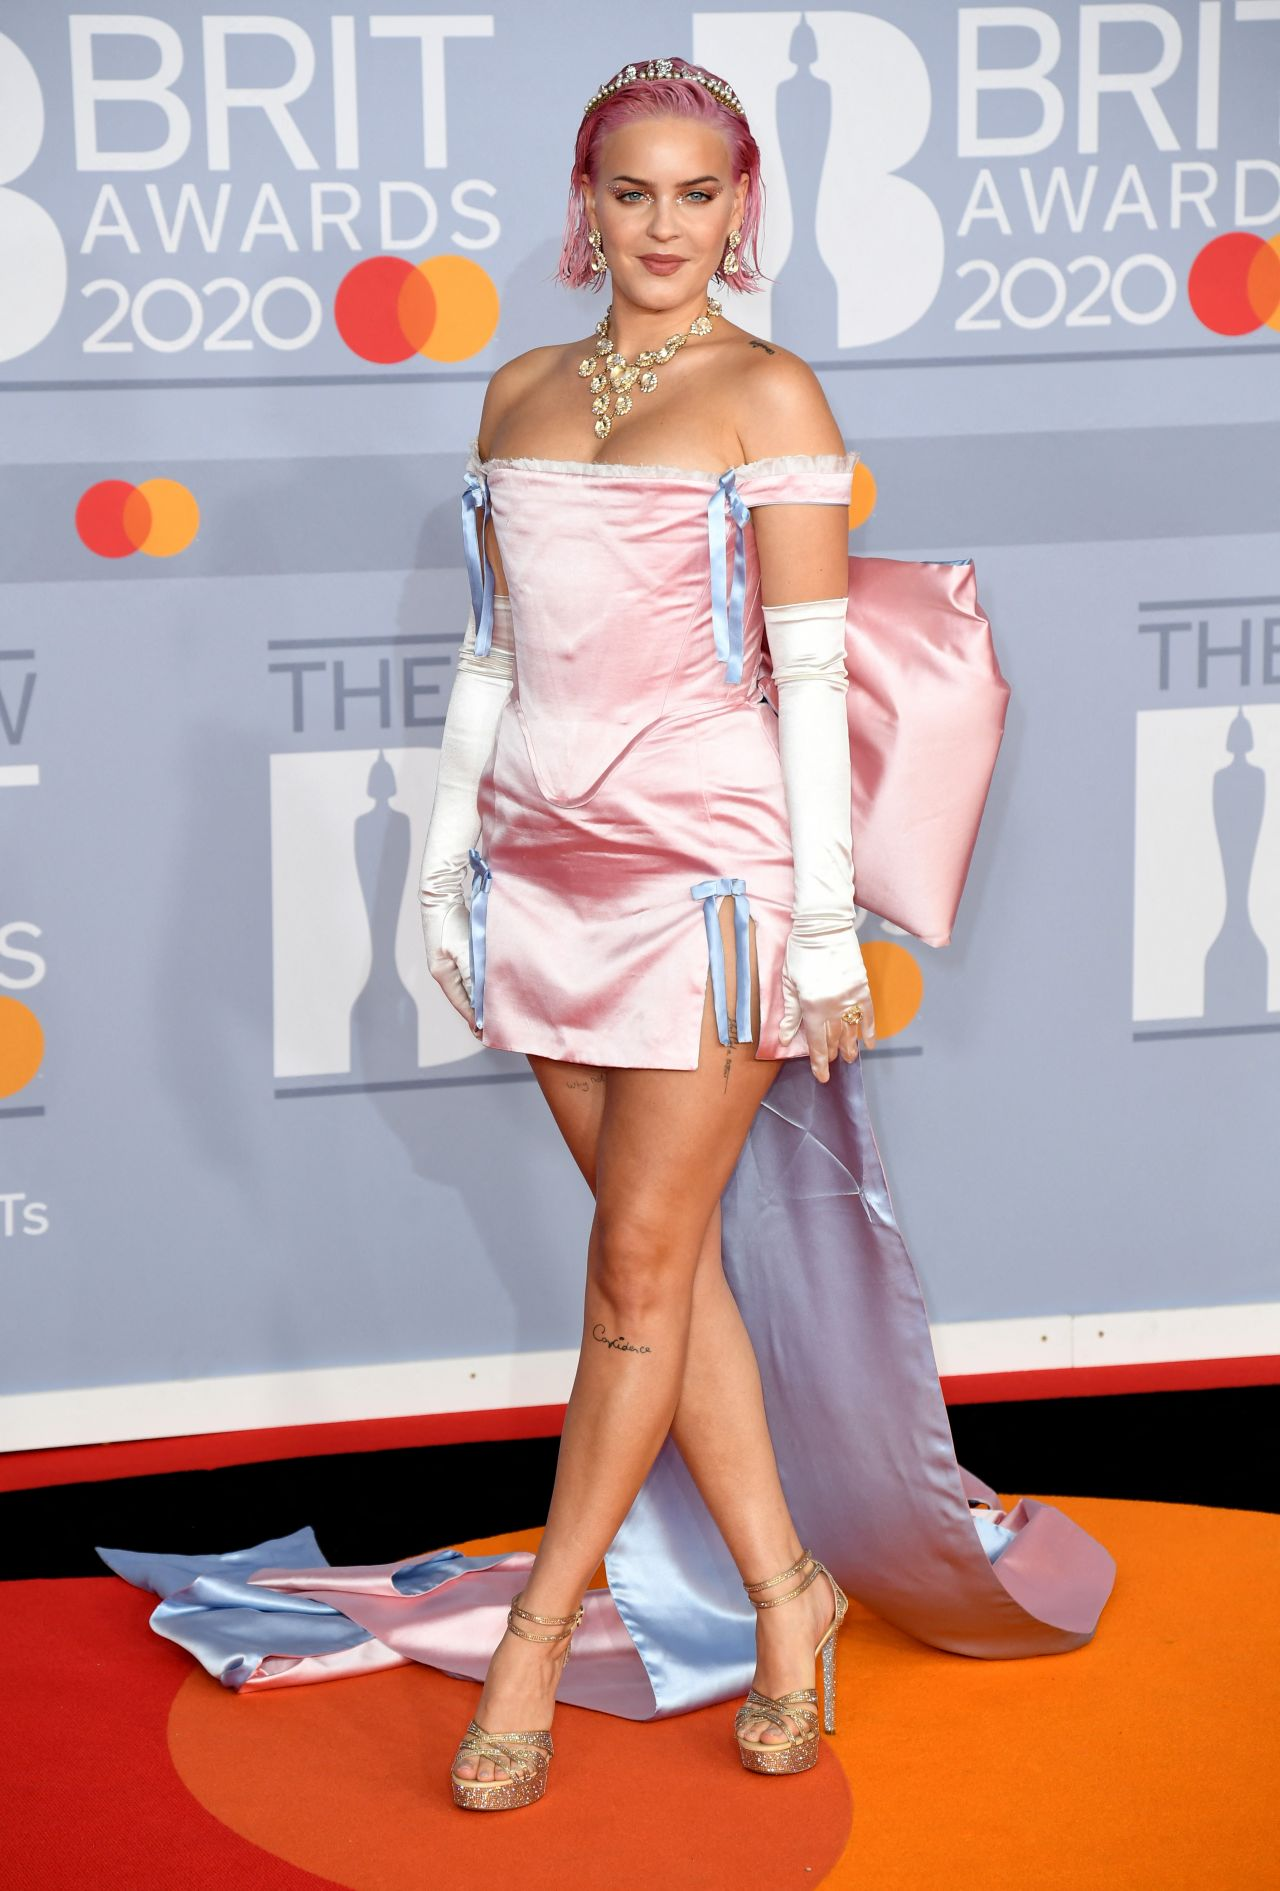 anne-marie-in-pink-bow-gown-2020-brit-awards